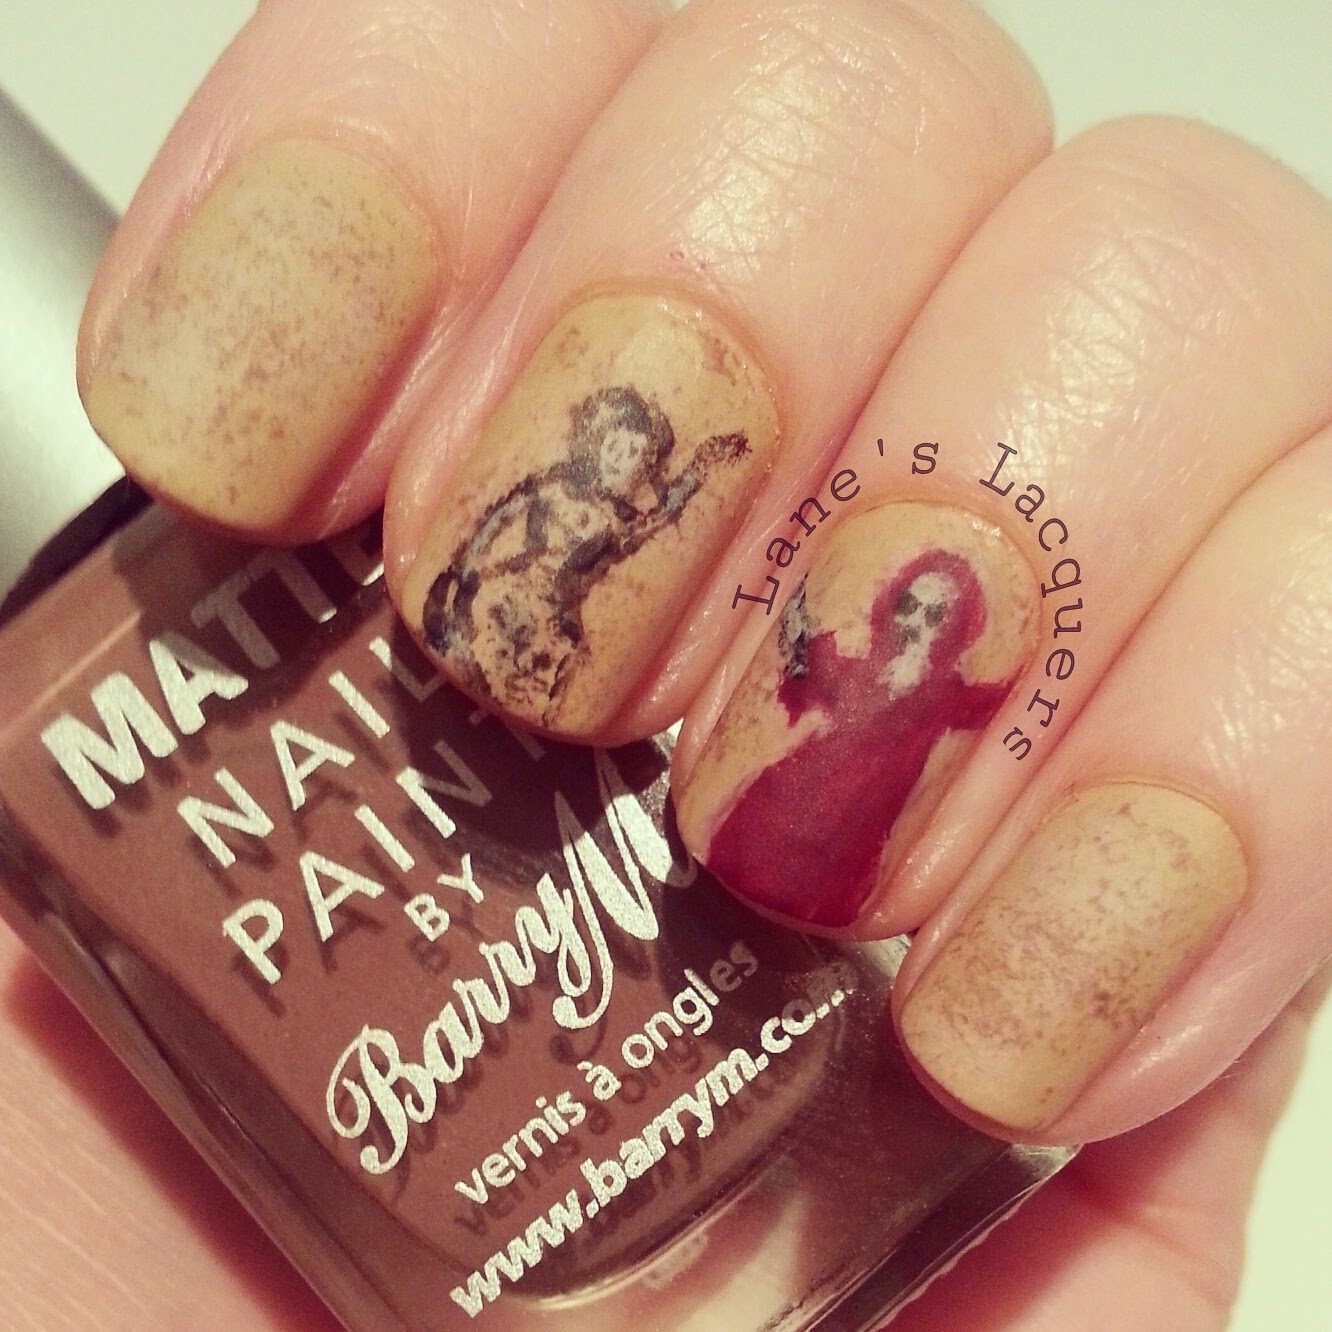 52wpnmc-brown-books-the-book-thief-nail-art (2)